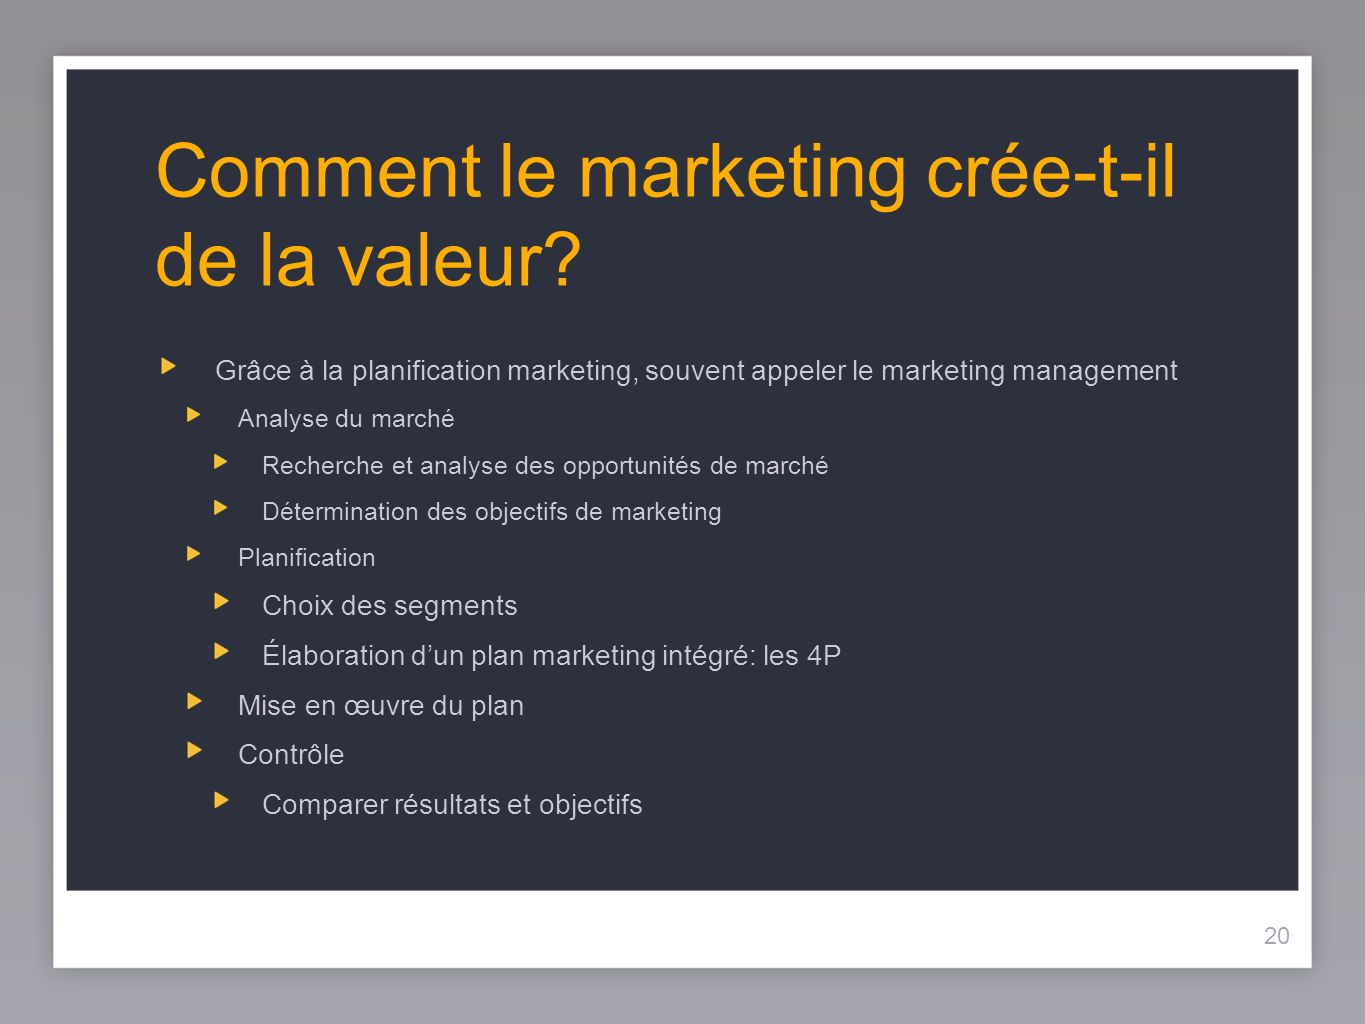 Comment le marketing crée-t-il de la valeur